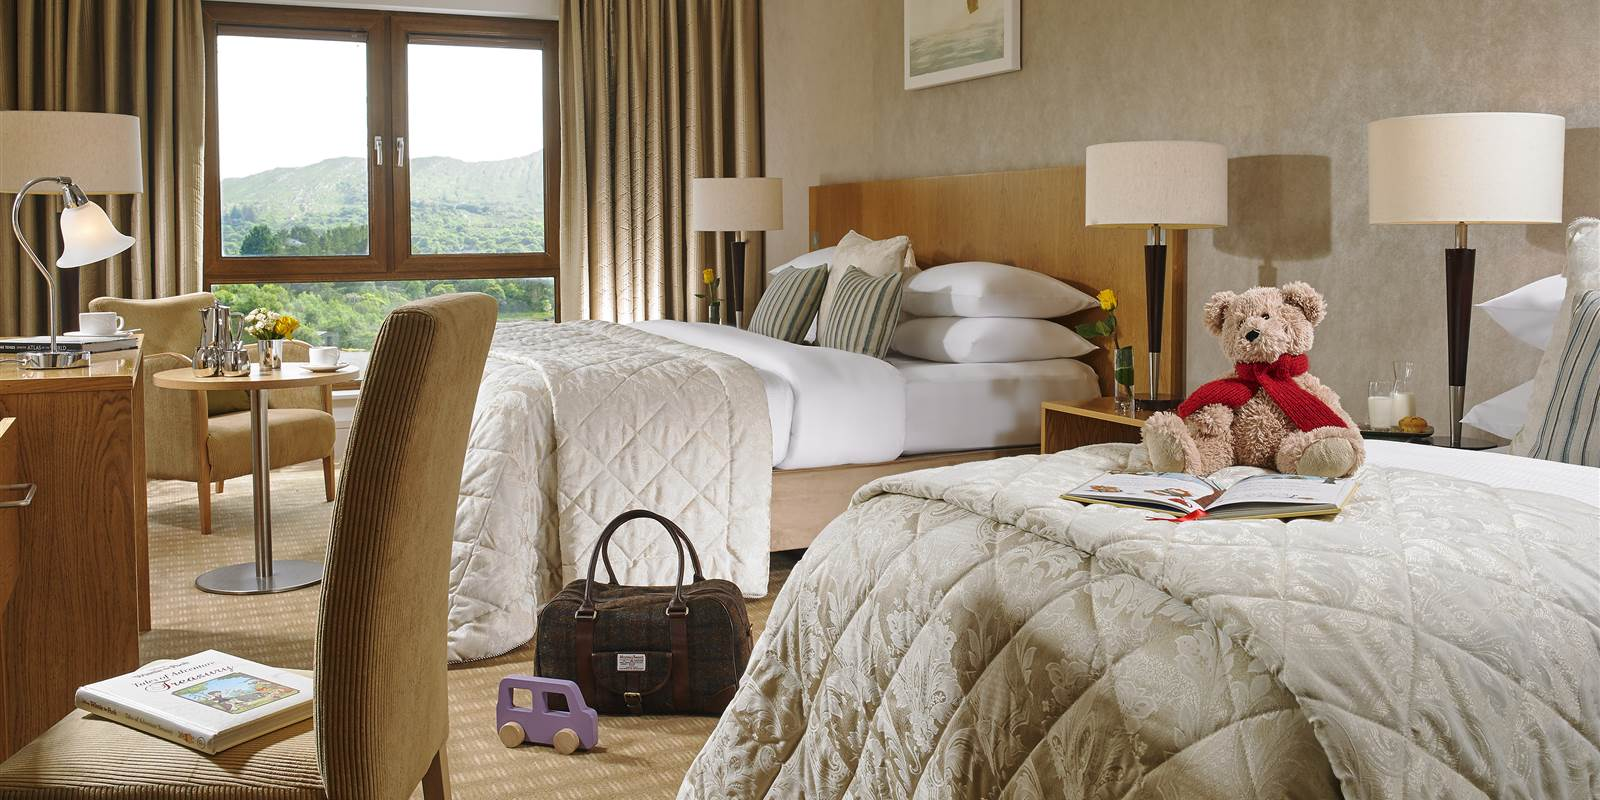 Family Hotels in Kerry at Sneem Hotel. 2 adults and 2 children 𝗙𝗿𝗼𝗺 €𝟭𝟭𝟬 𝗽𝗲𝗿 𝗿𝗼𝗼𝗺